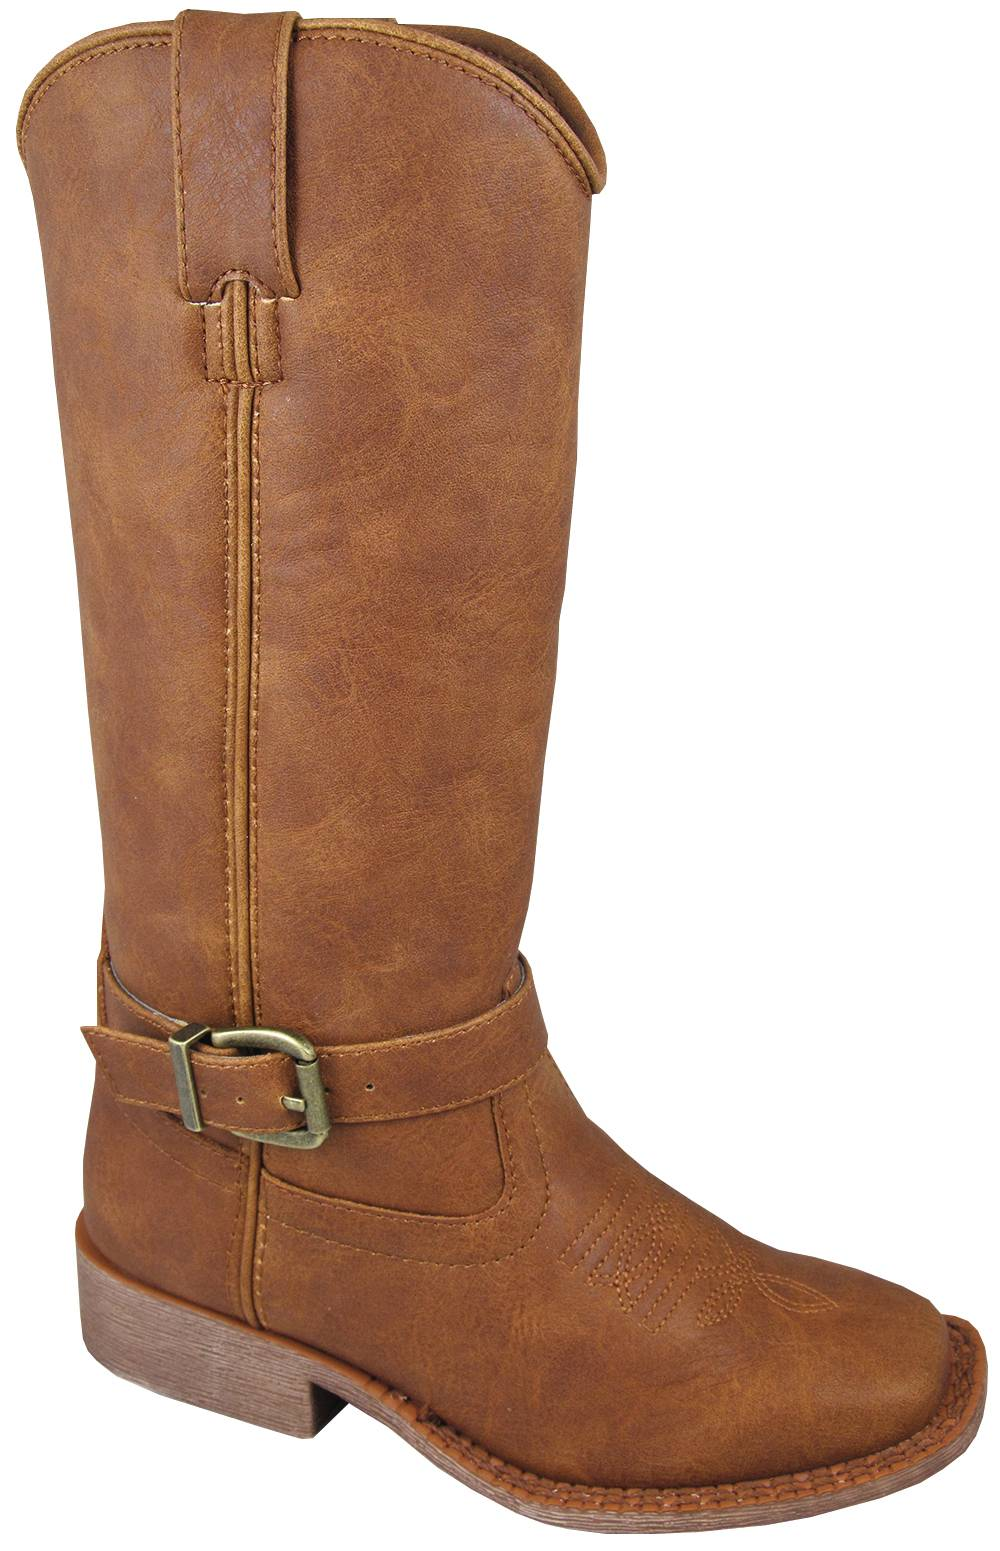 Smoky Mountain Youth Buttercup Tall Square Toe Boots - Tan